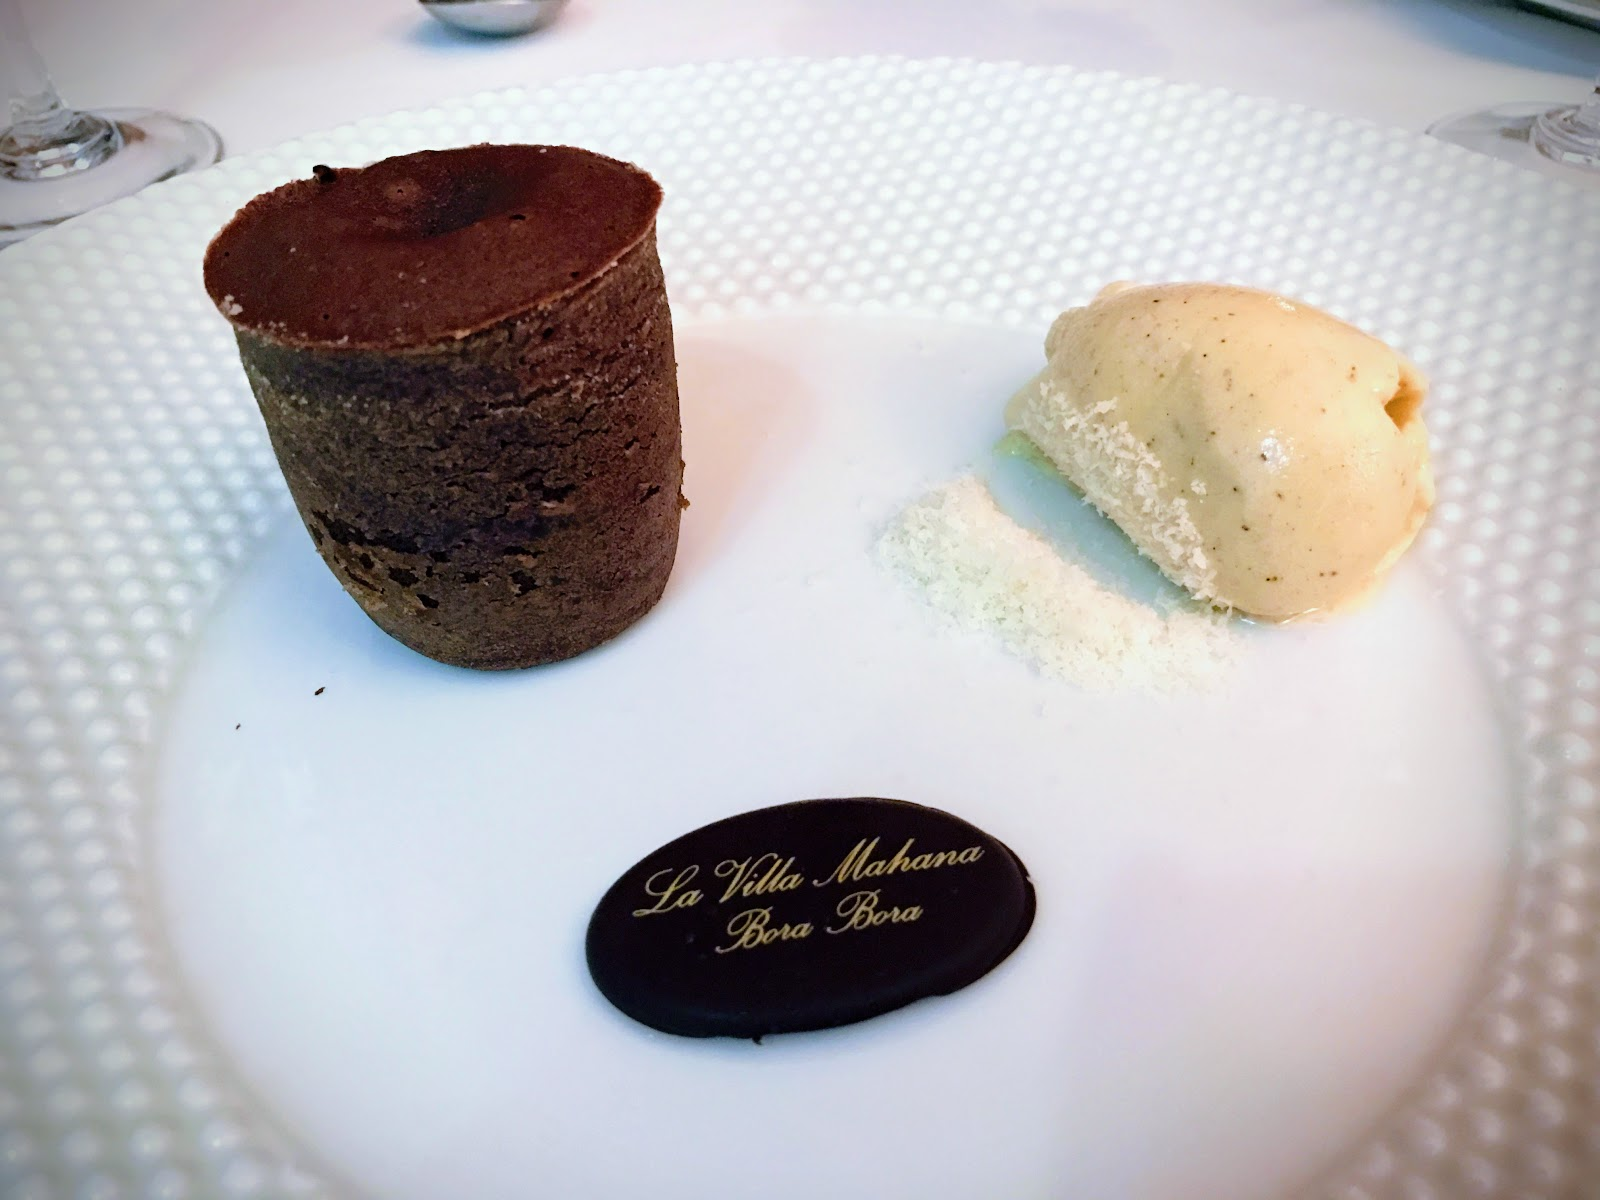 Warm and Creamy Chocolate Cake with Vanilla Ice Cream 熱巧克力蛋糕與香草冰淇淋